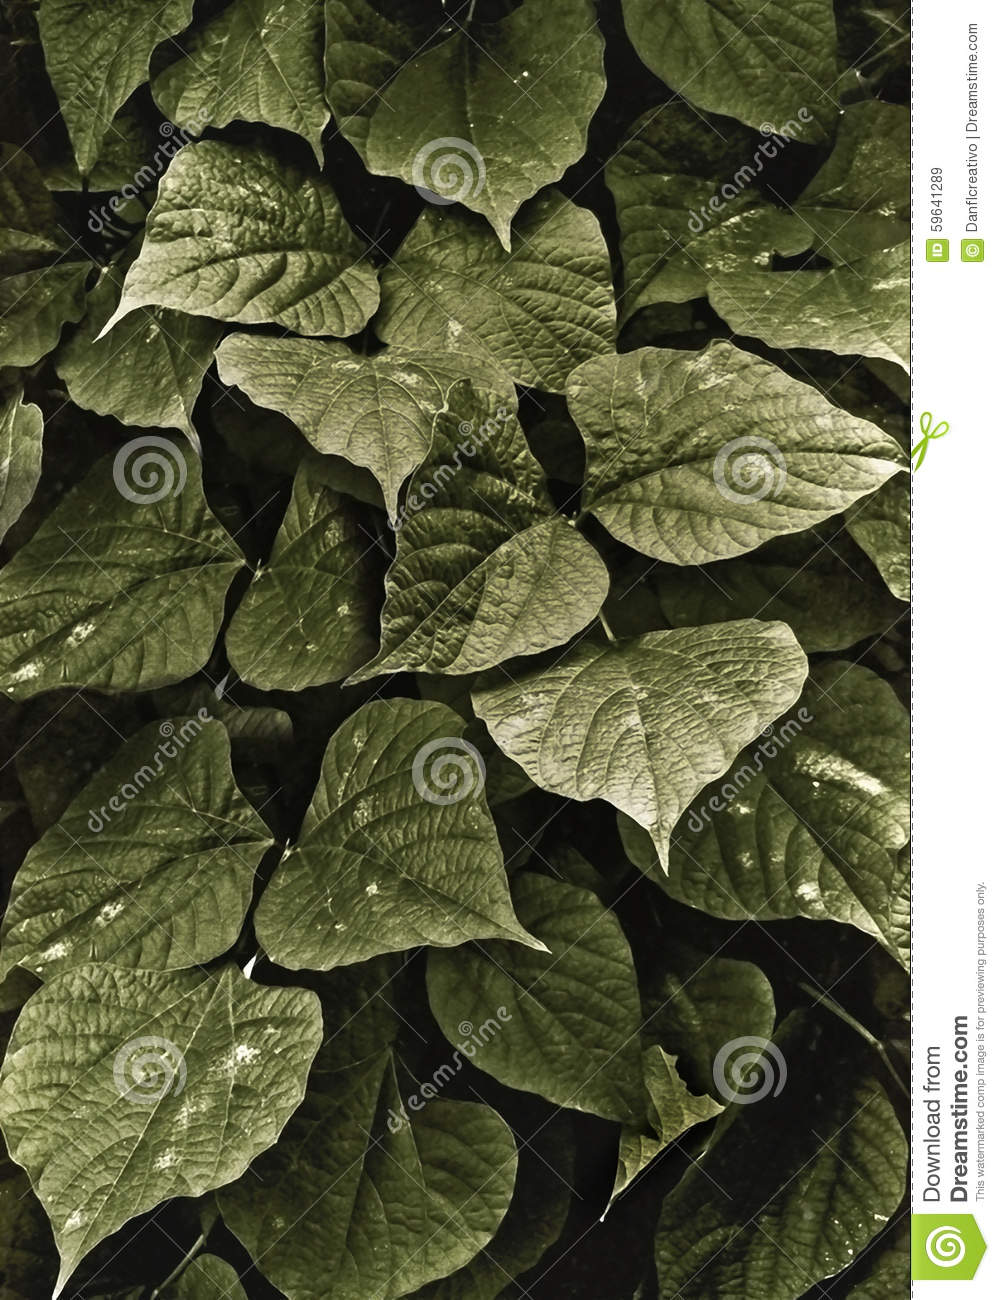 Dark Green Leaves Background Stock Photo - Image: 59641289